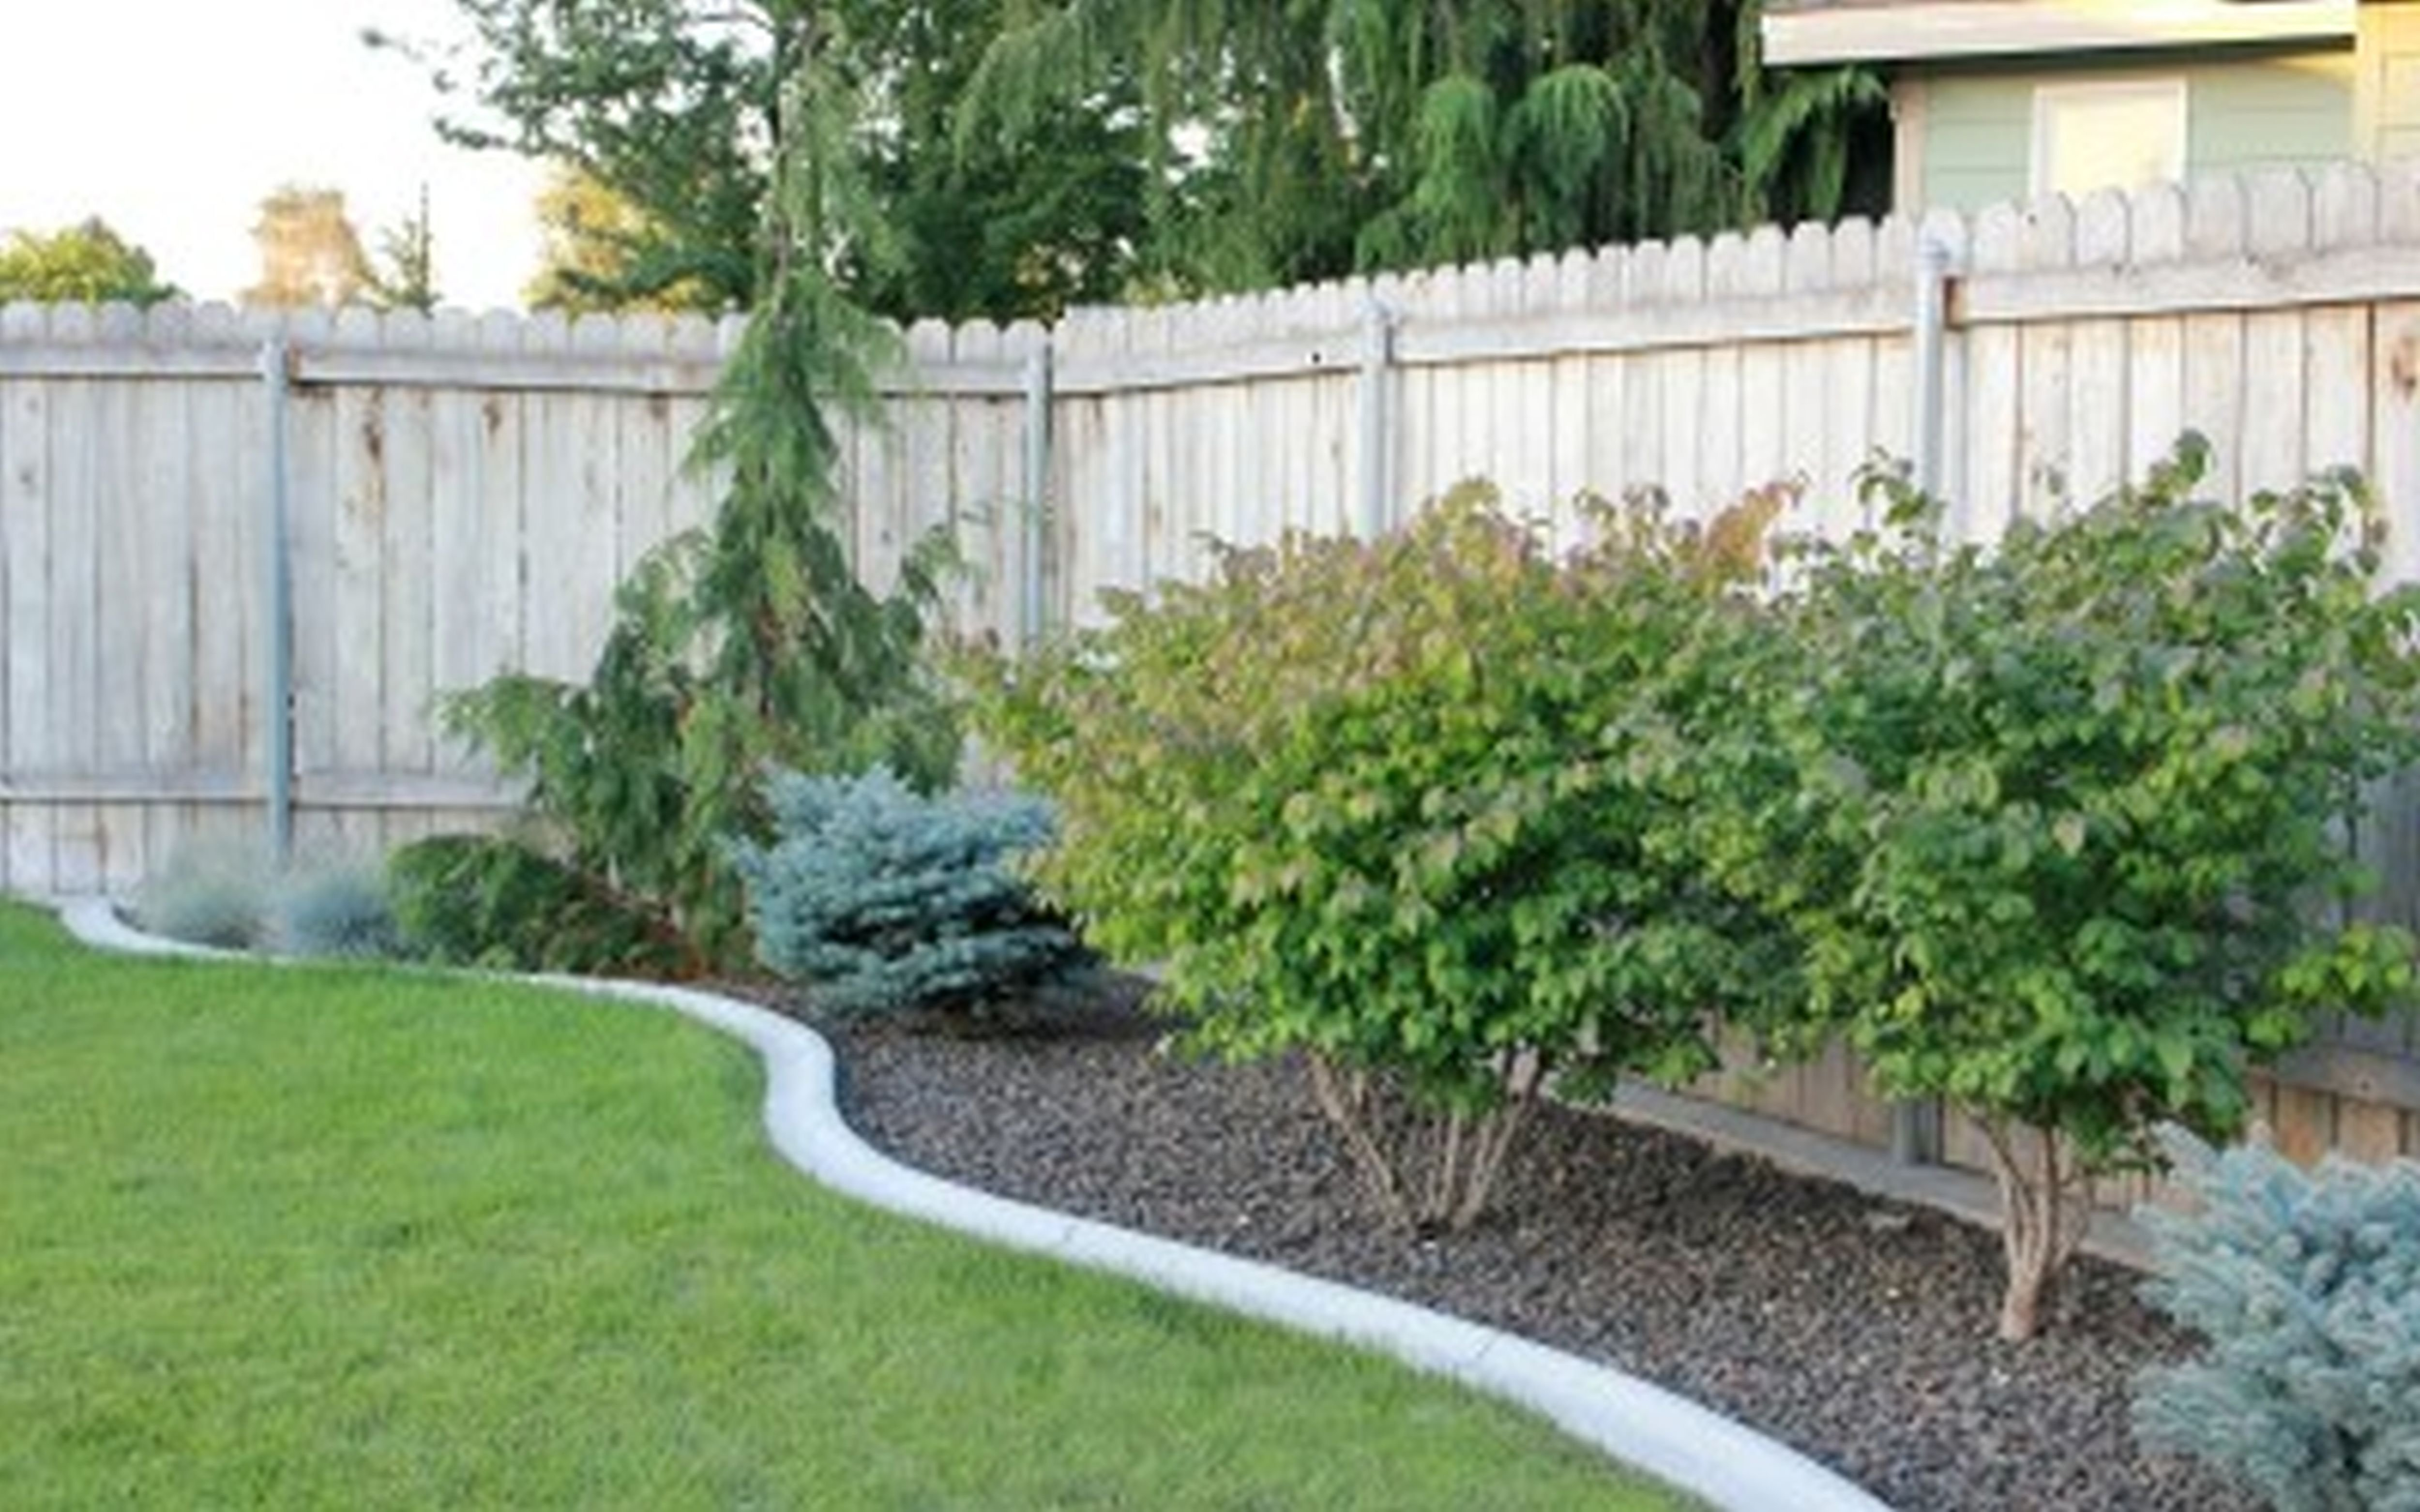 Explore Cheap Landscaping Ideas And More Front Yard On A Budget regarding Ideas For Landscaping Backyard On A Budget